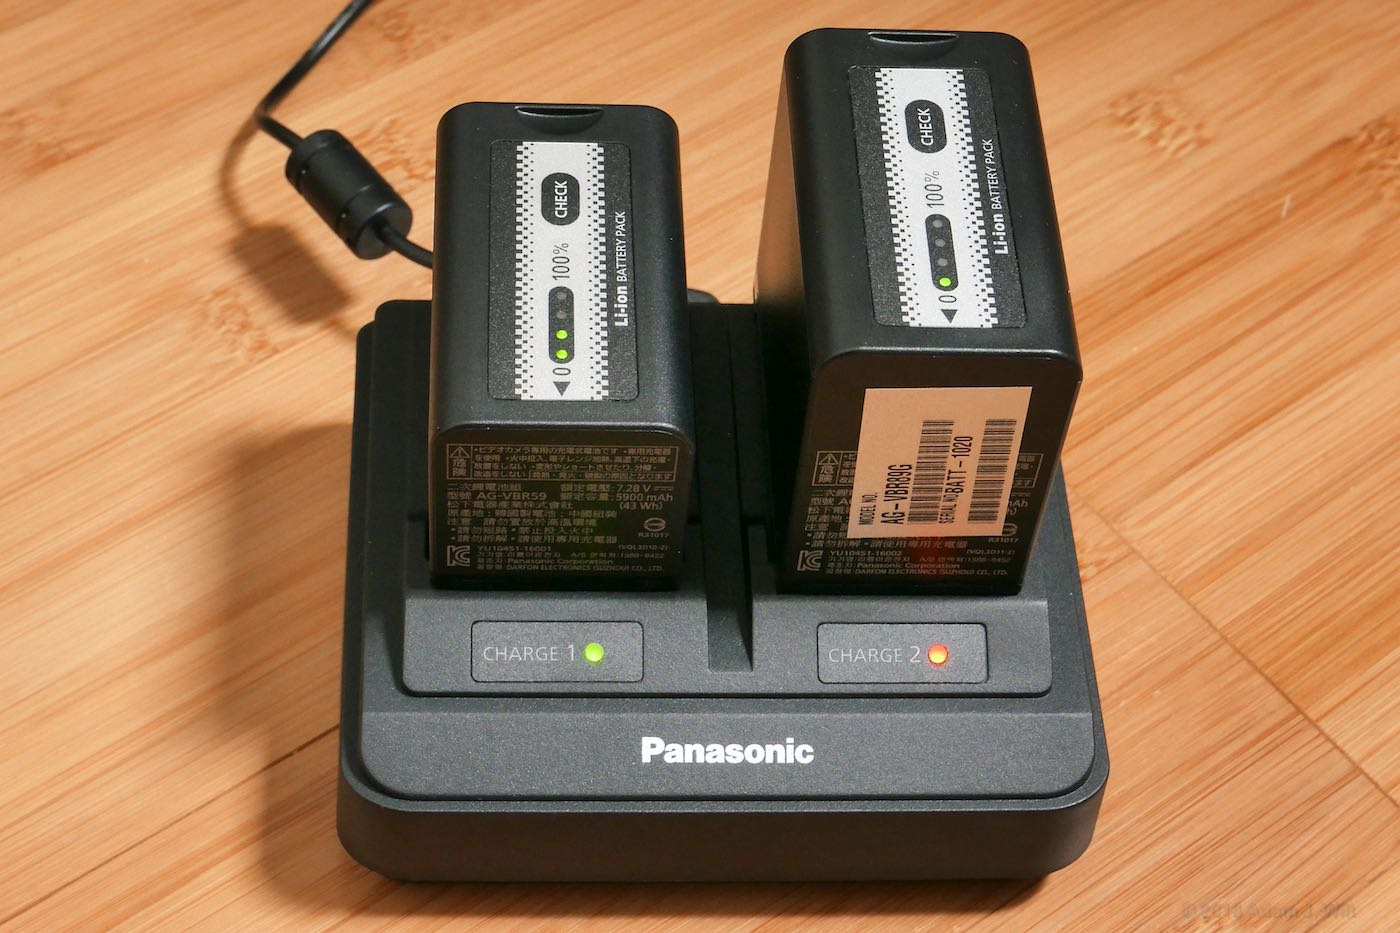 Battery charger with normal and high-capacity batteries.